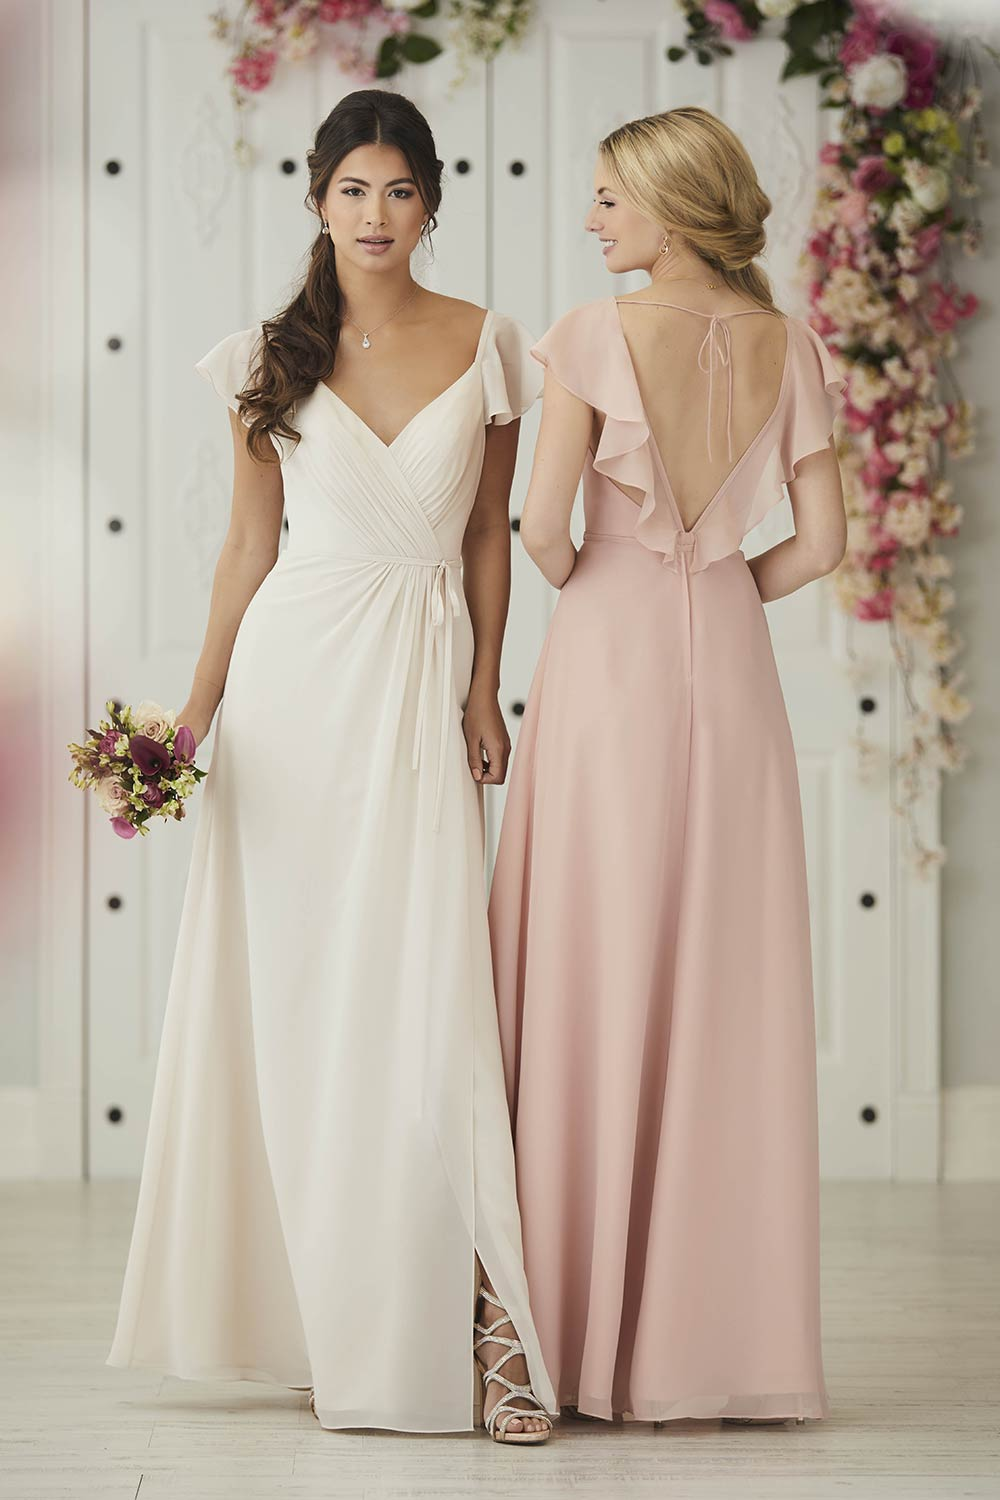 bridesmaid-dresses-jacquelin-bridals-canada-27284